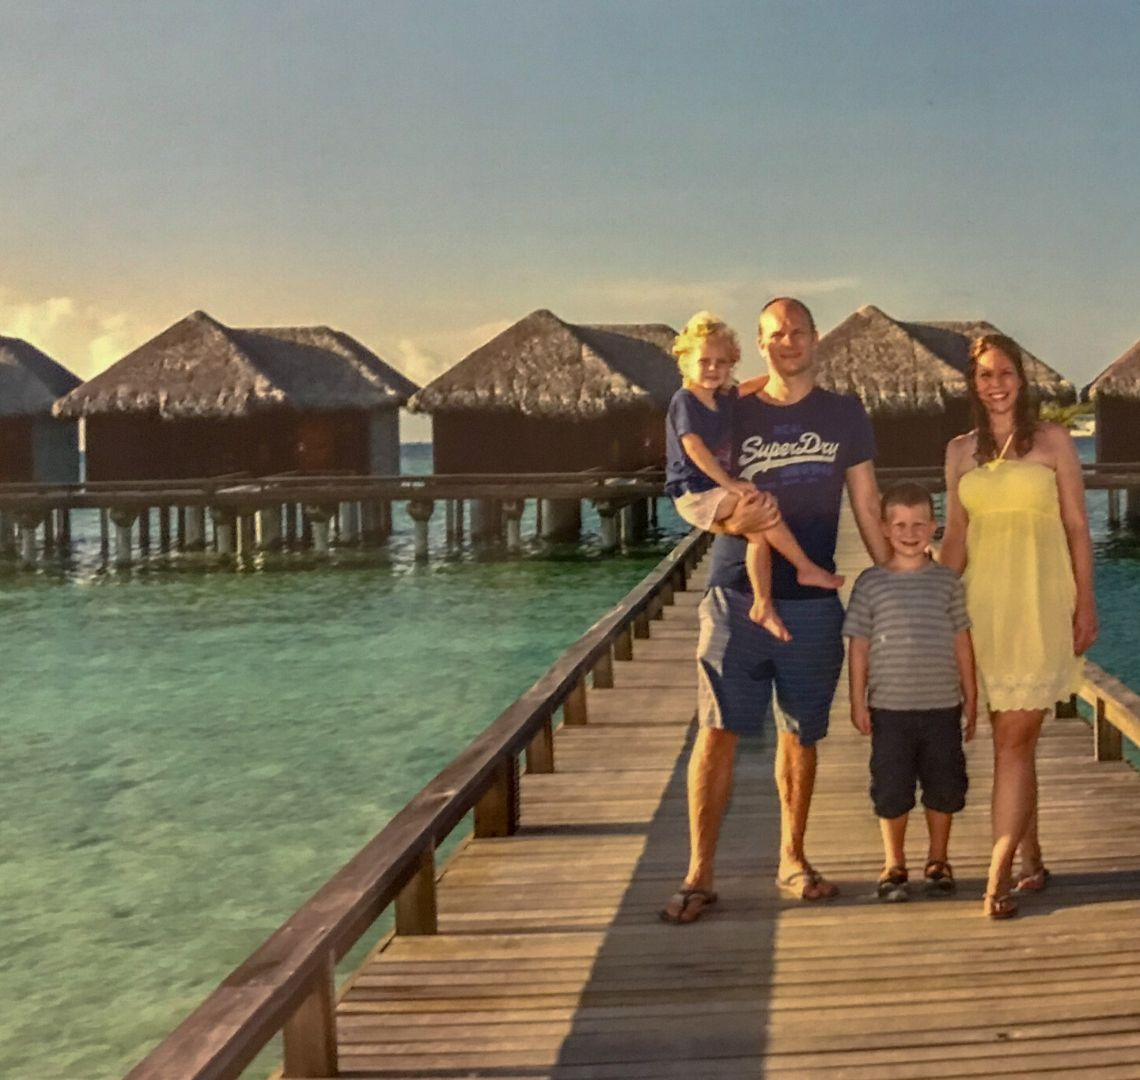 Maldives Activities / Things to do in the Maldives - family photo shoot. We are standing on a wooden deck with water bungalows behind us. Th